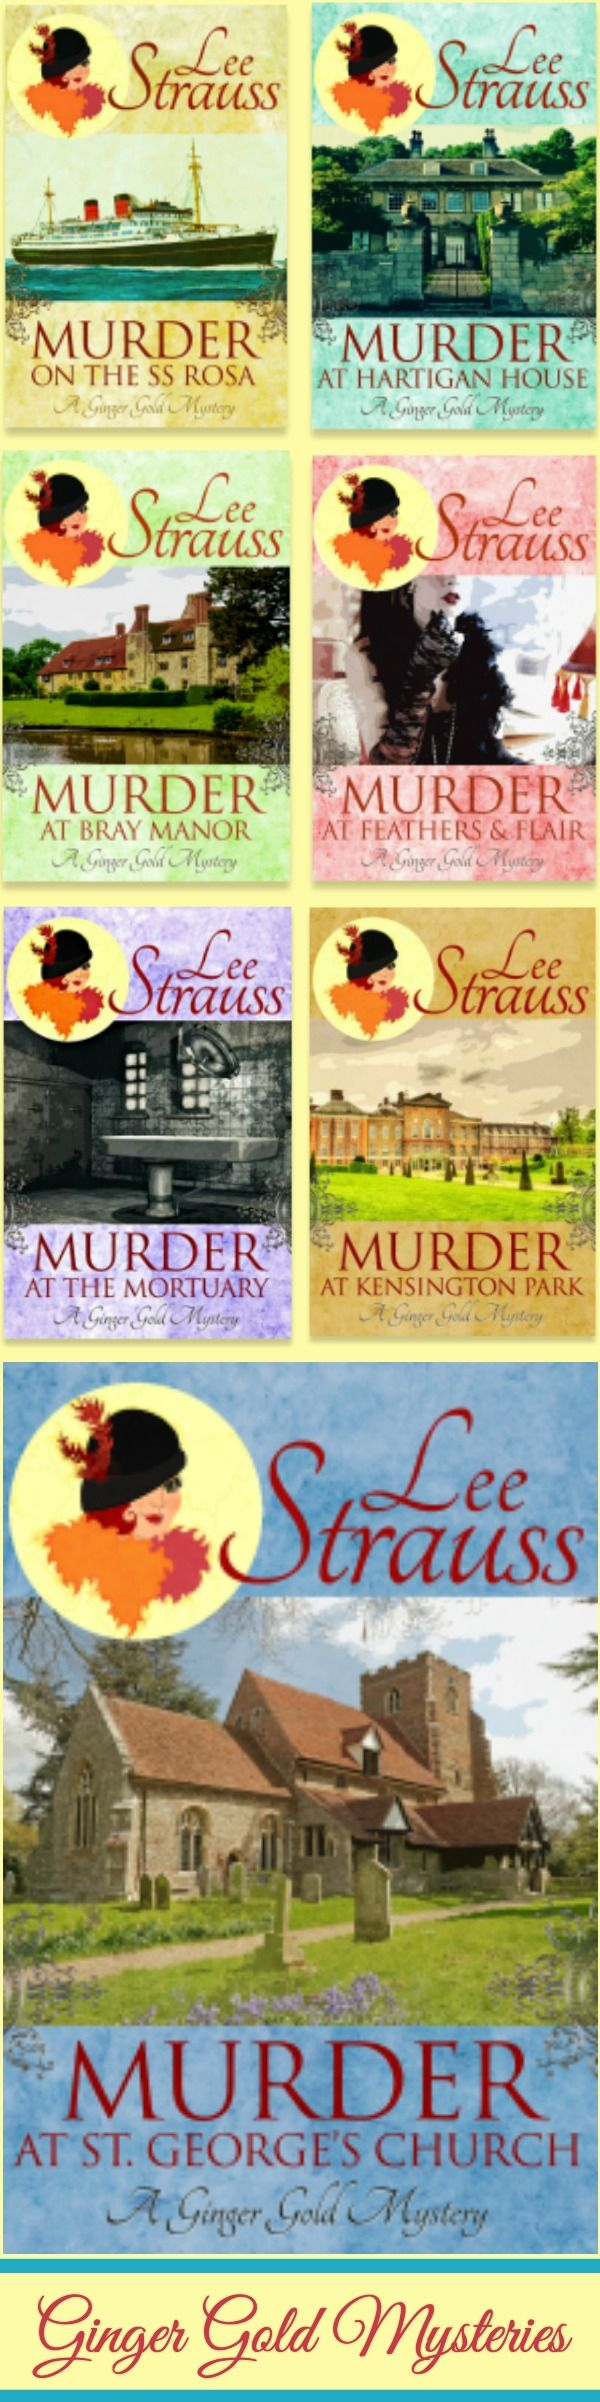 Move over Miss Fisher! Mystery & Intrigue in the 1920s.